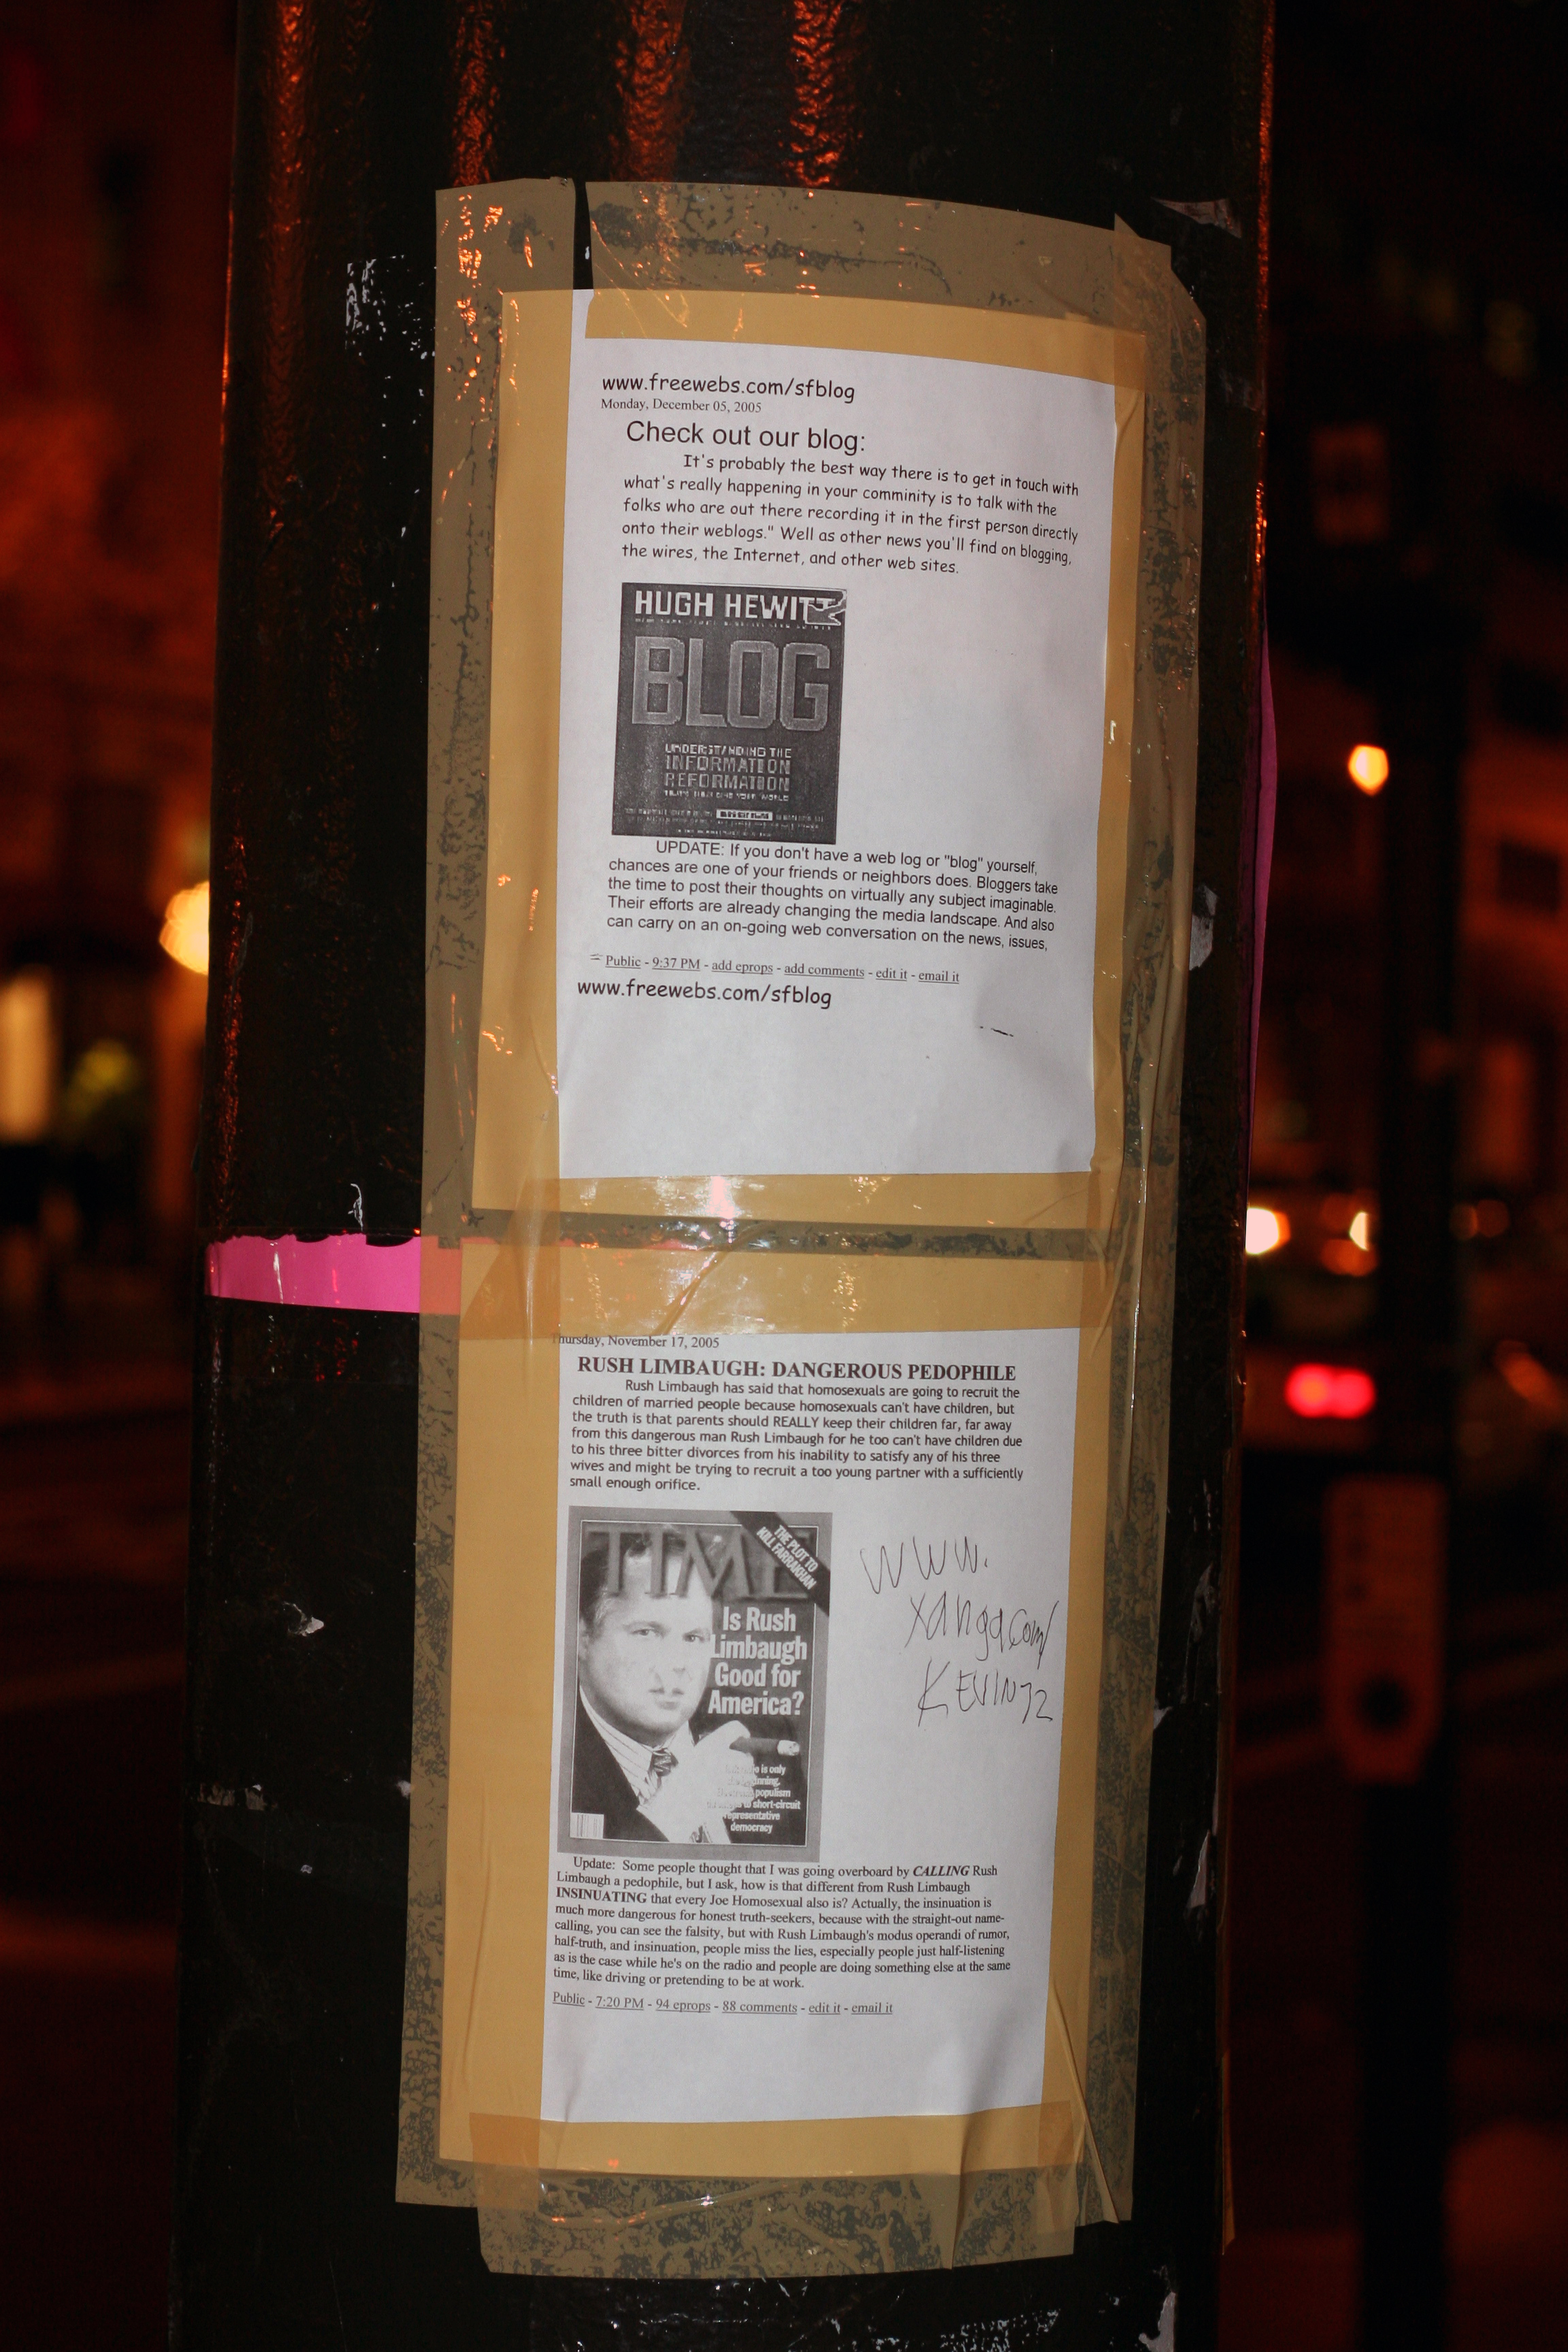 Blog posts on a lamp post